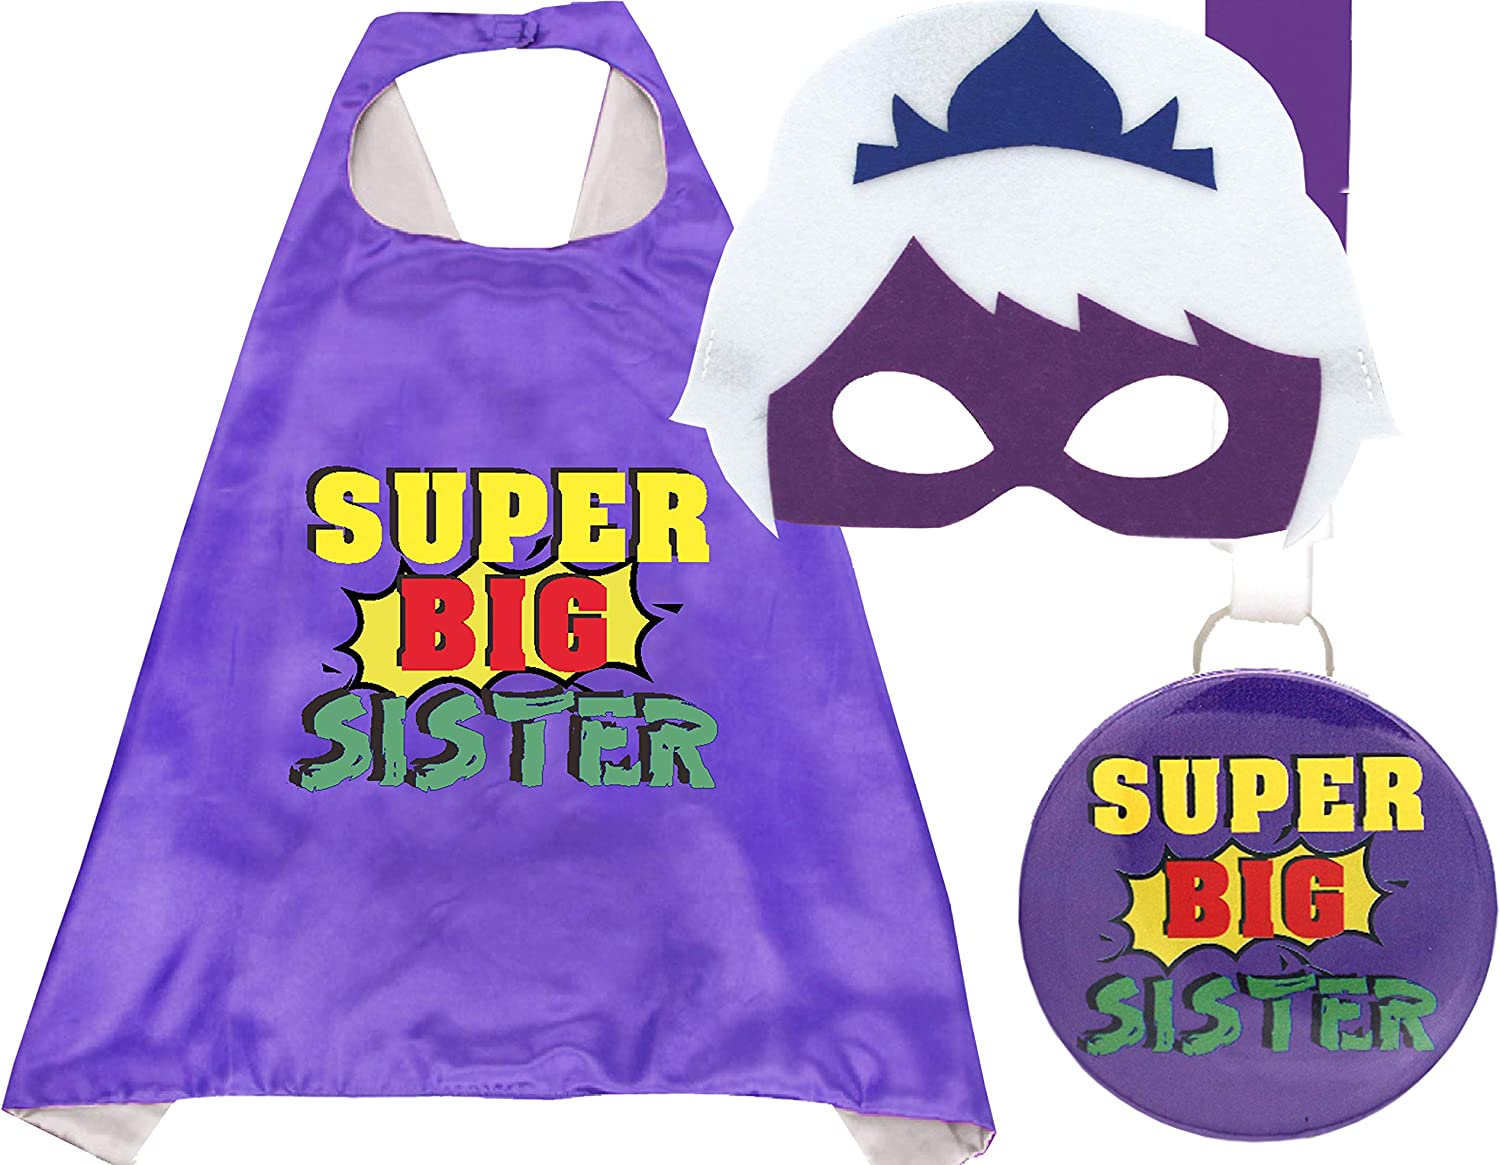 Big Sister Cape, Super Sister, New Big Sister Gifts, Big Sister Gifts, Big Sister Gifts For Little Girls Gifts for New Sister